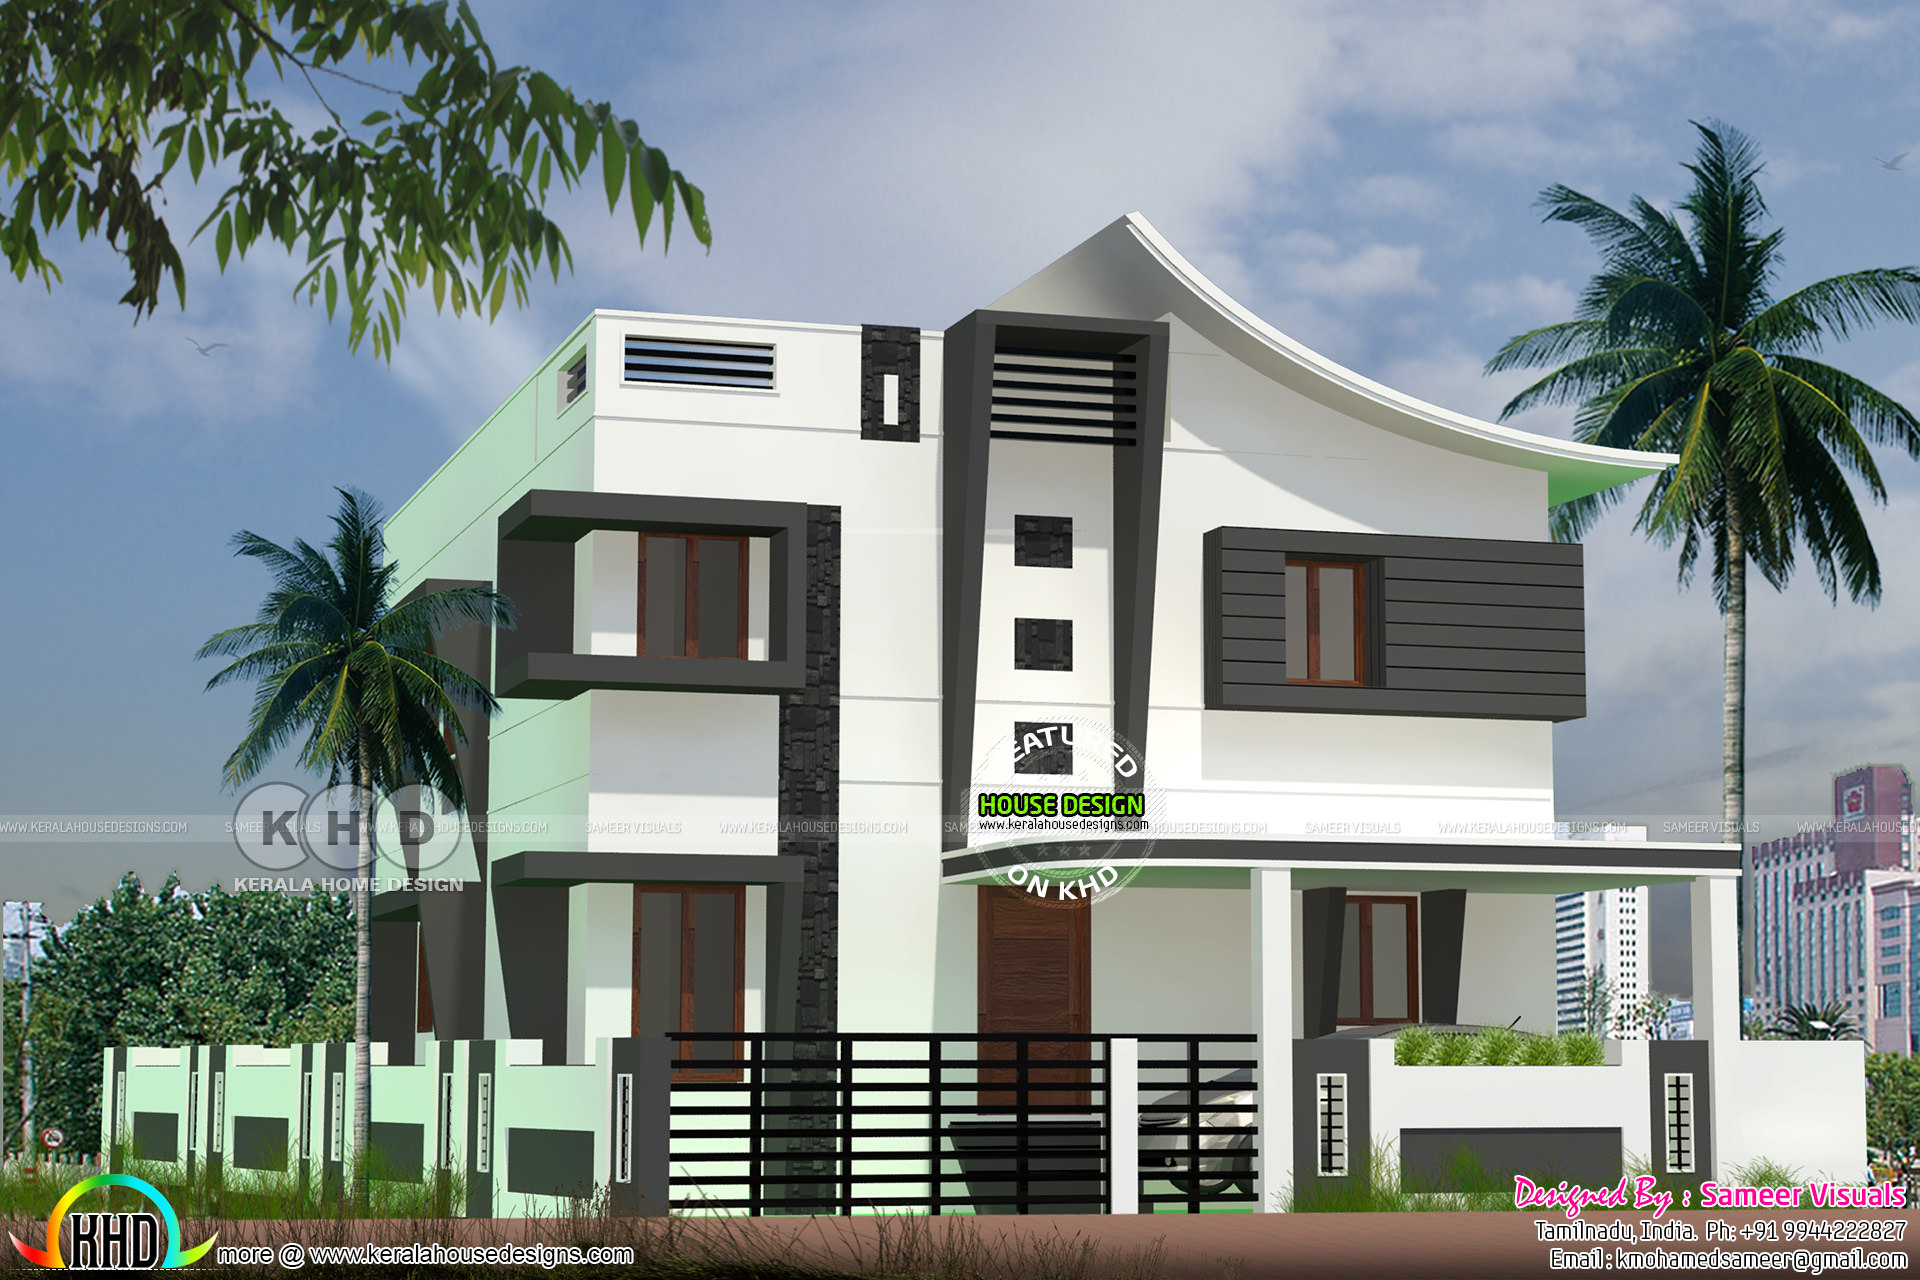 200 square meter mixed roof home kerala home design and floor plans - Houses atticsquare meters ...